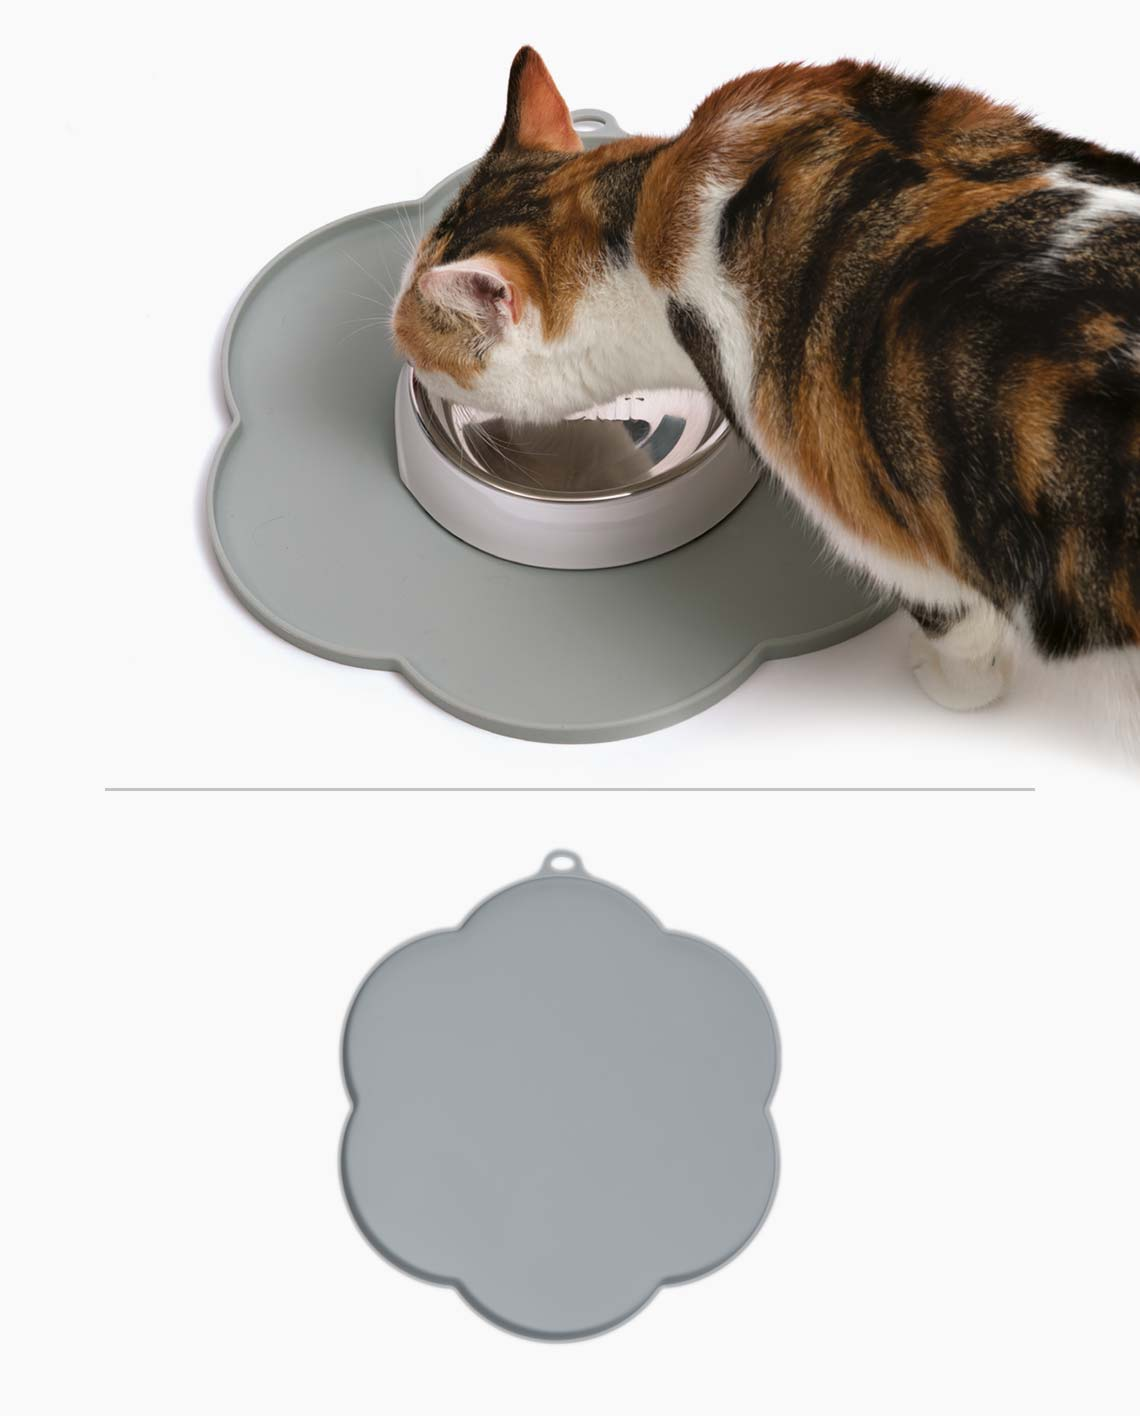 Pixi eating from a dish with a flower placemat